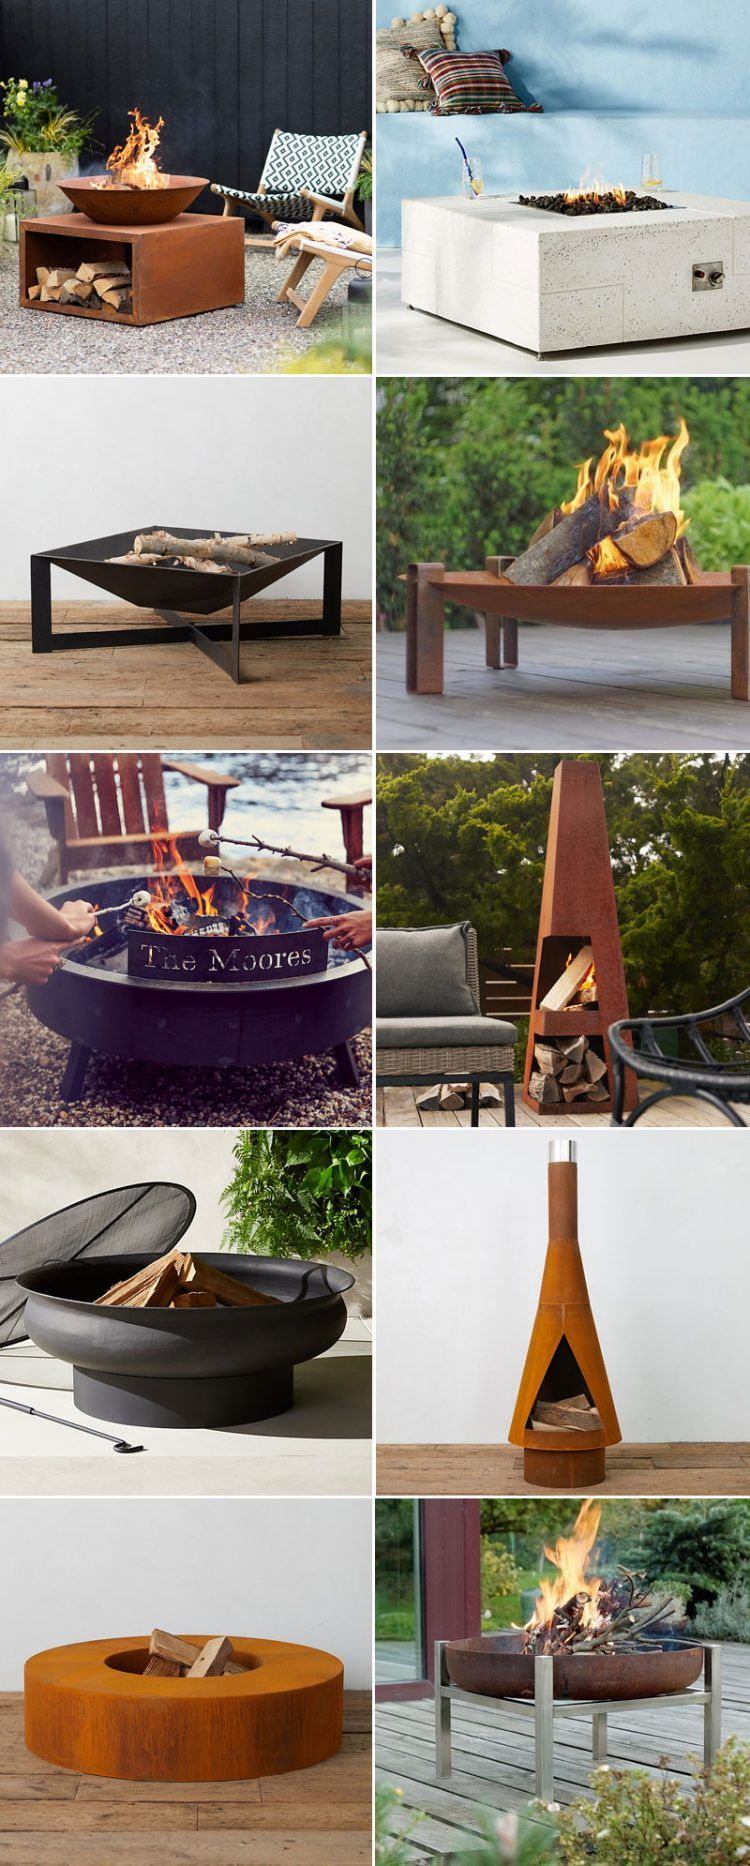 15+ Modern Fire Pits To Complete Your Backyard Oasis #backyardoasis